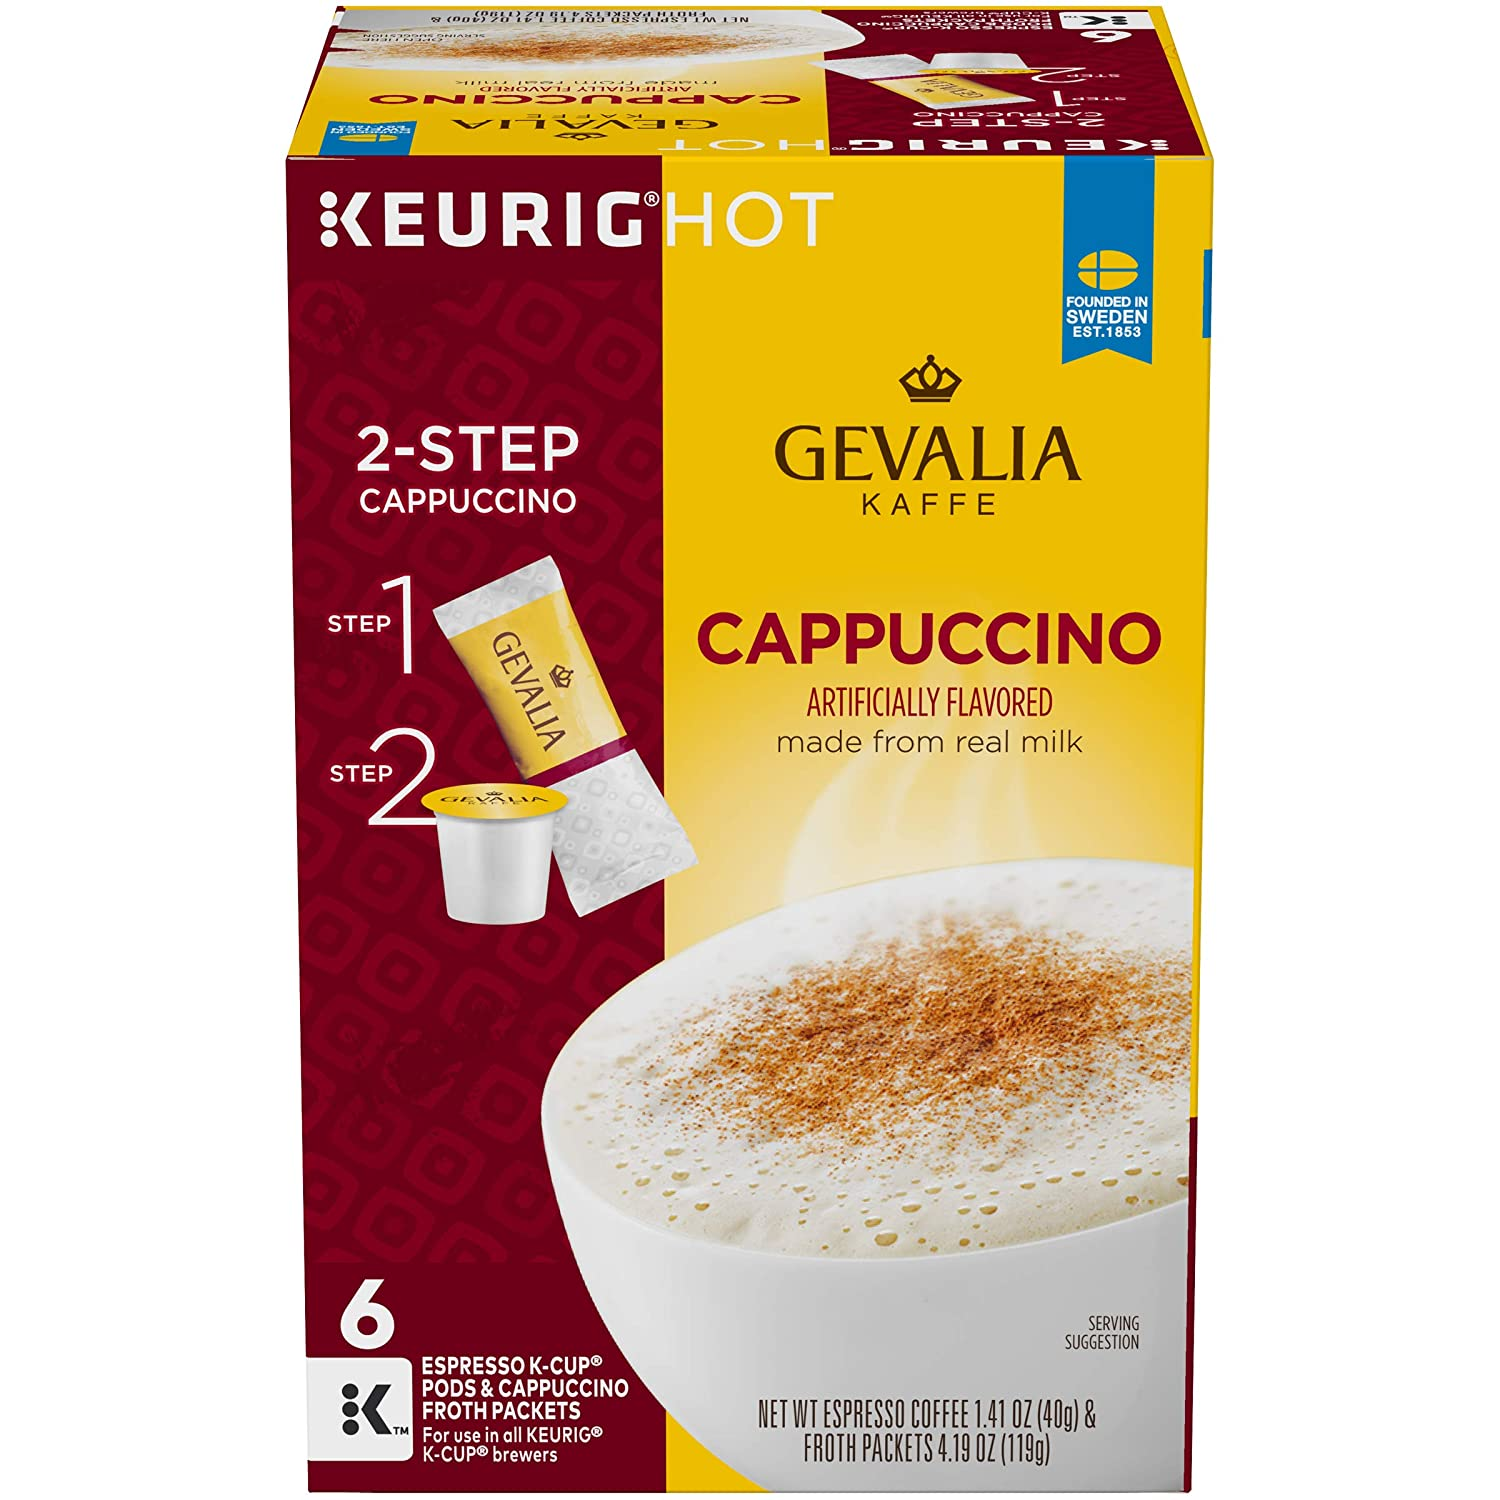 Gevalia Cappuccino Keurig K Cup Coffee Pods & Froth Packets (6 Count)